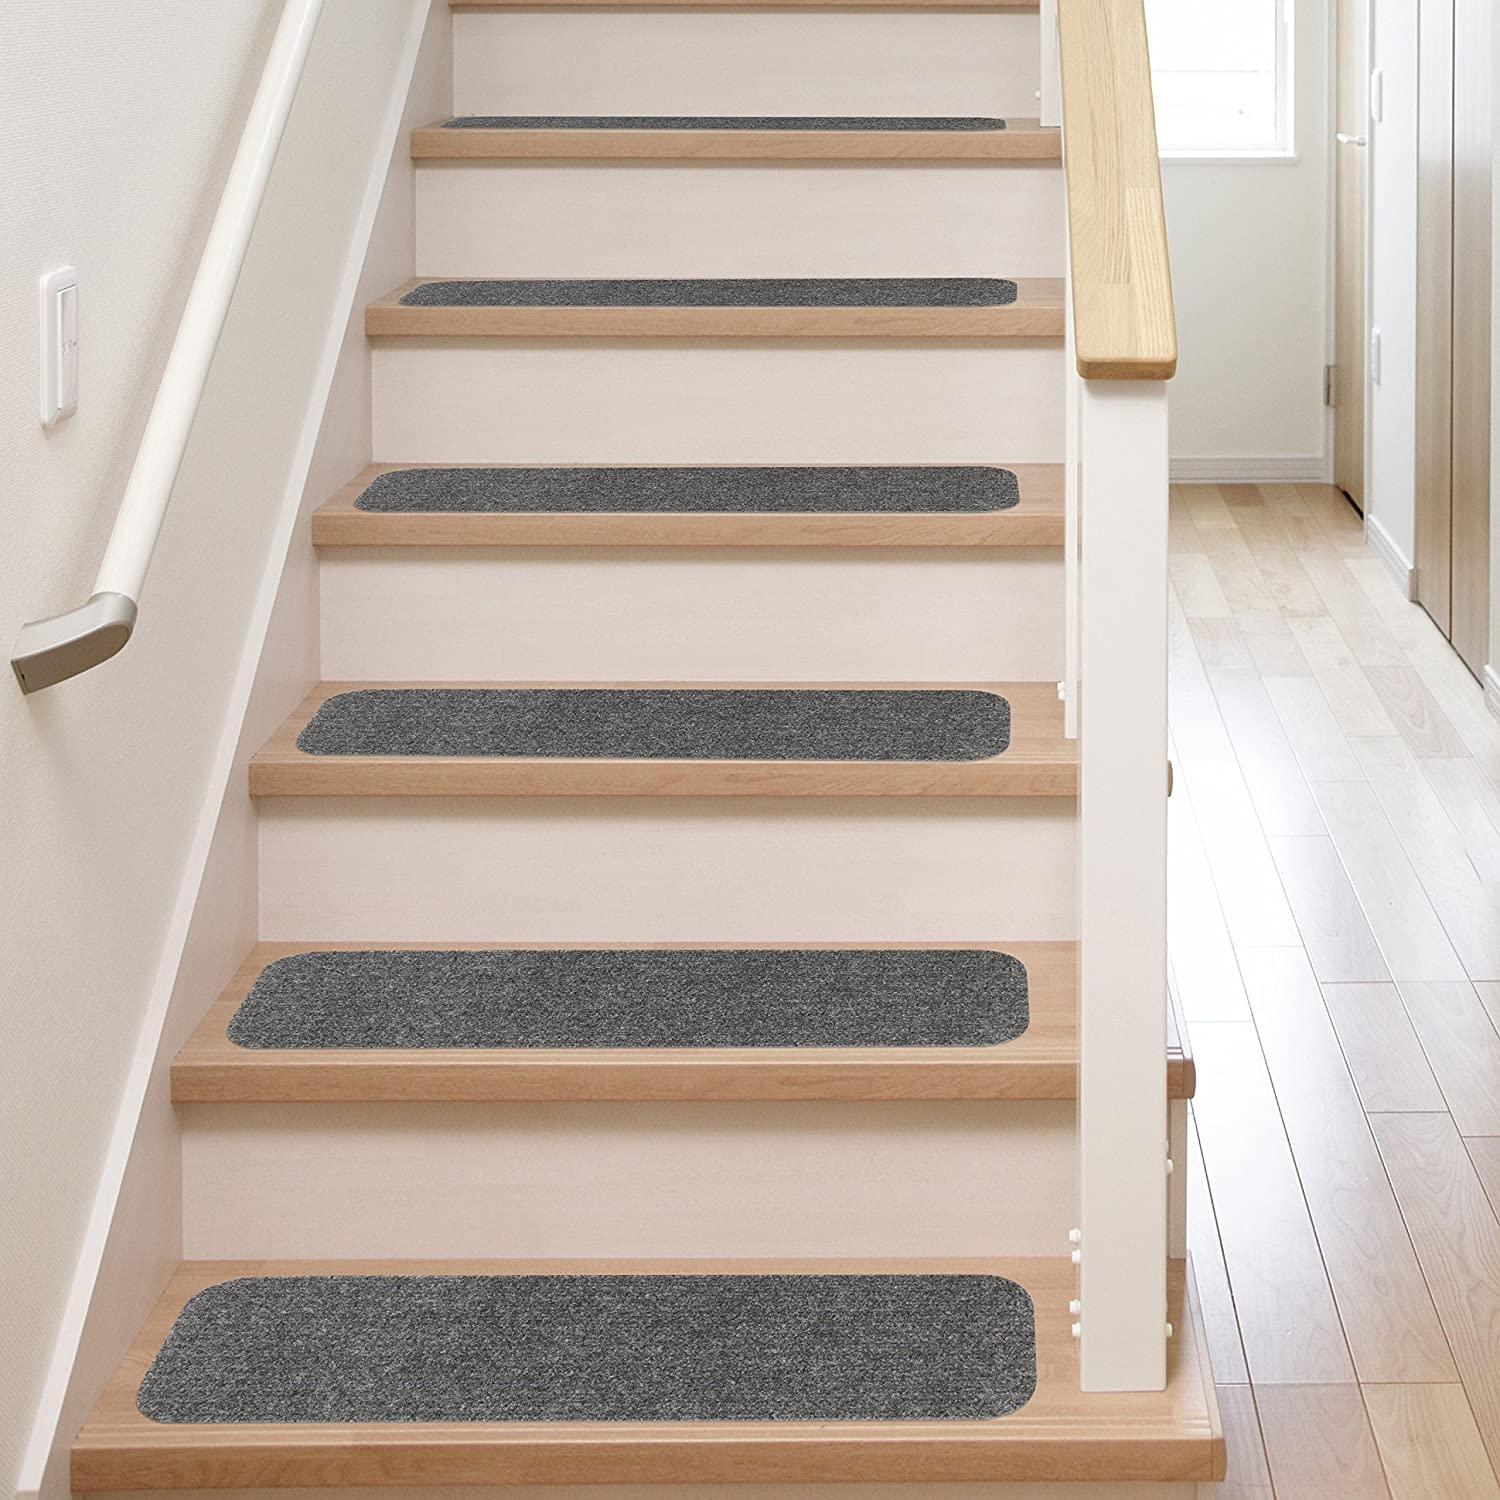 13 Stair Treads Non Slip Carpet Pads Easy Tape Installation | Converting Carpeted Stairs To Wood | Stair Tread | Staircase Makeover | Laminate Flooring | Wood Flooring | Risers